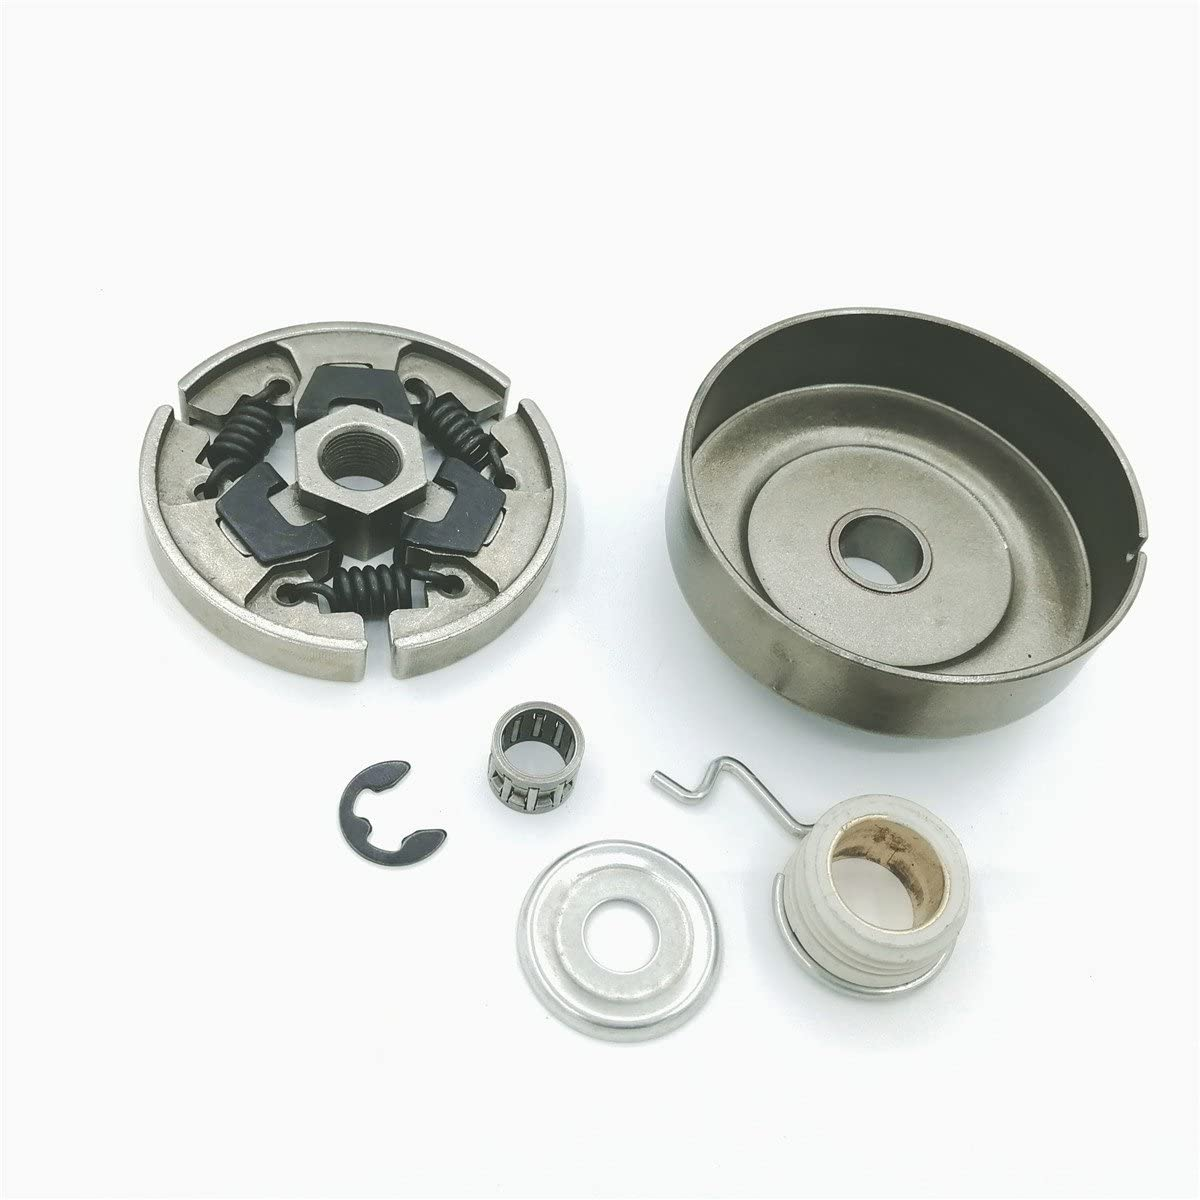 Chain Sprocket Worm Gear Bearing Washer FOR STIHL MS210 MS230 023 MS250 025 021